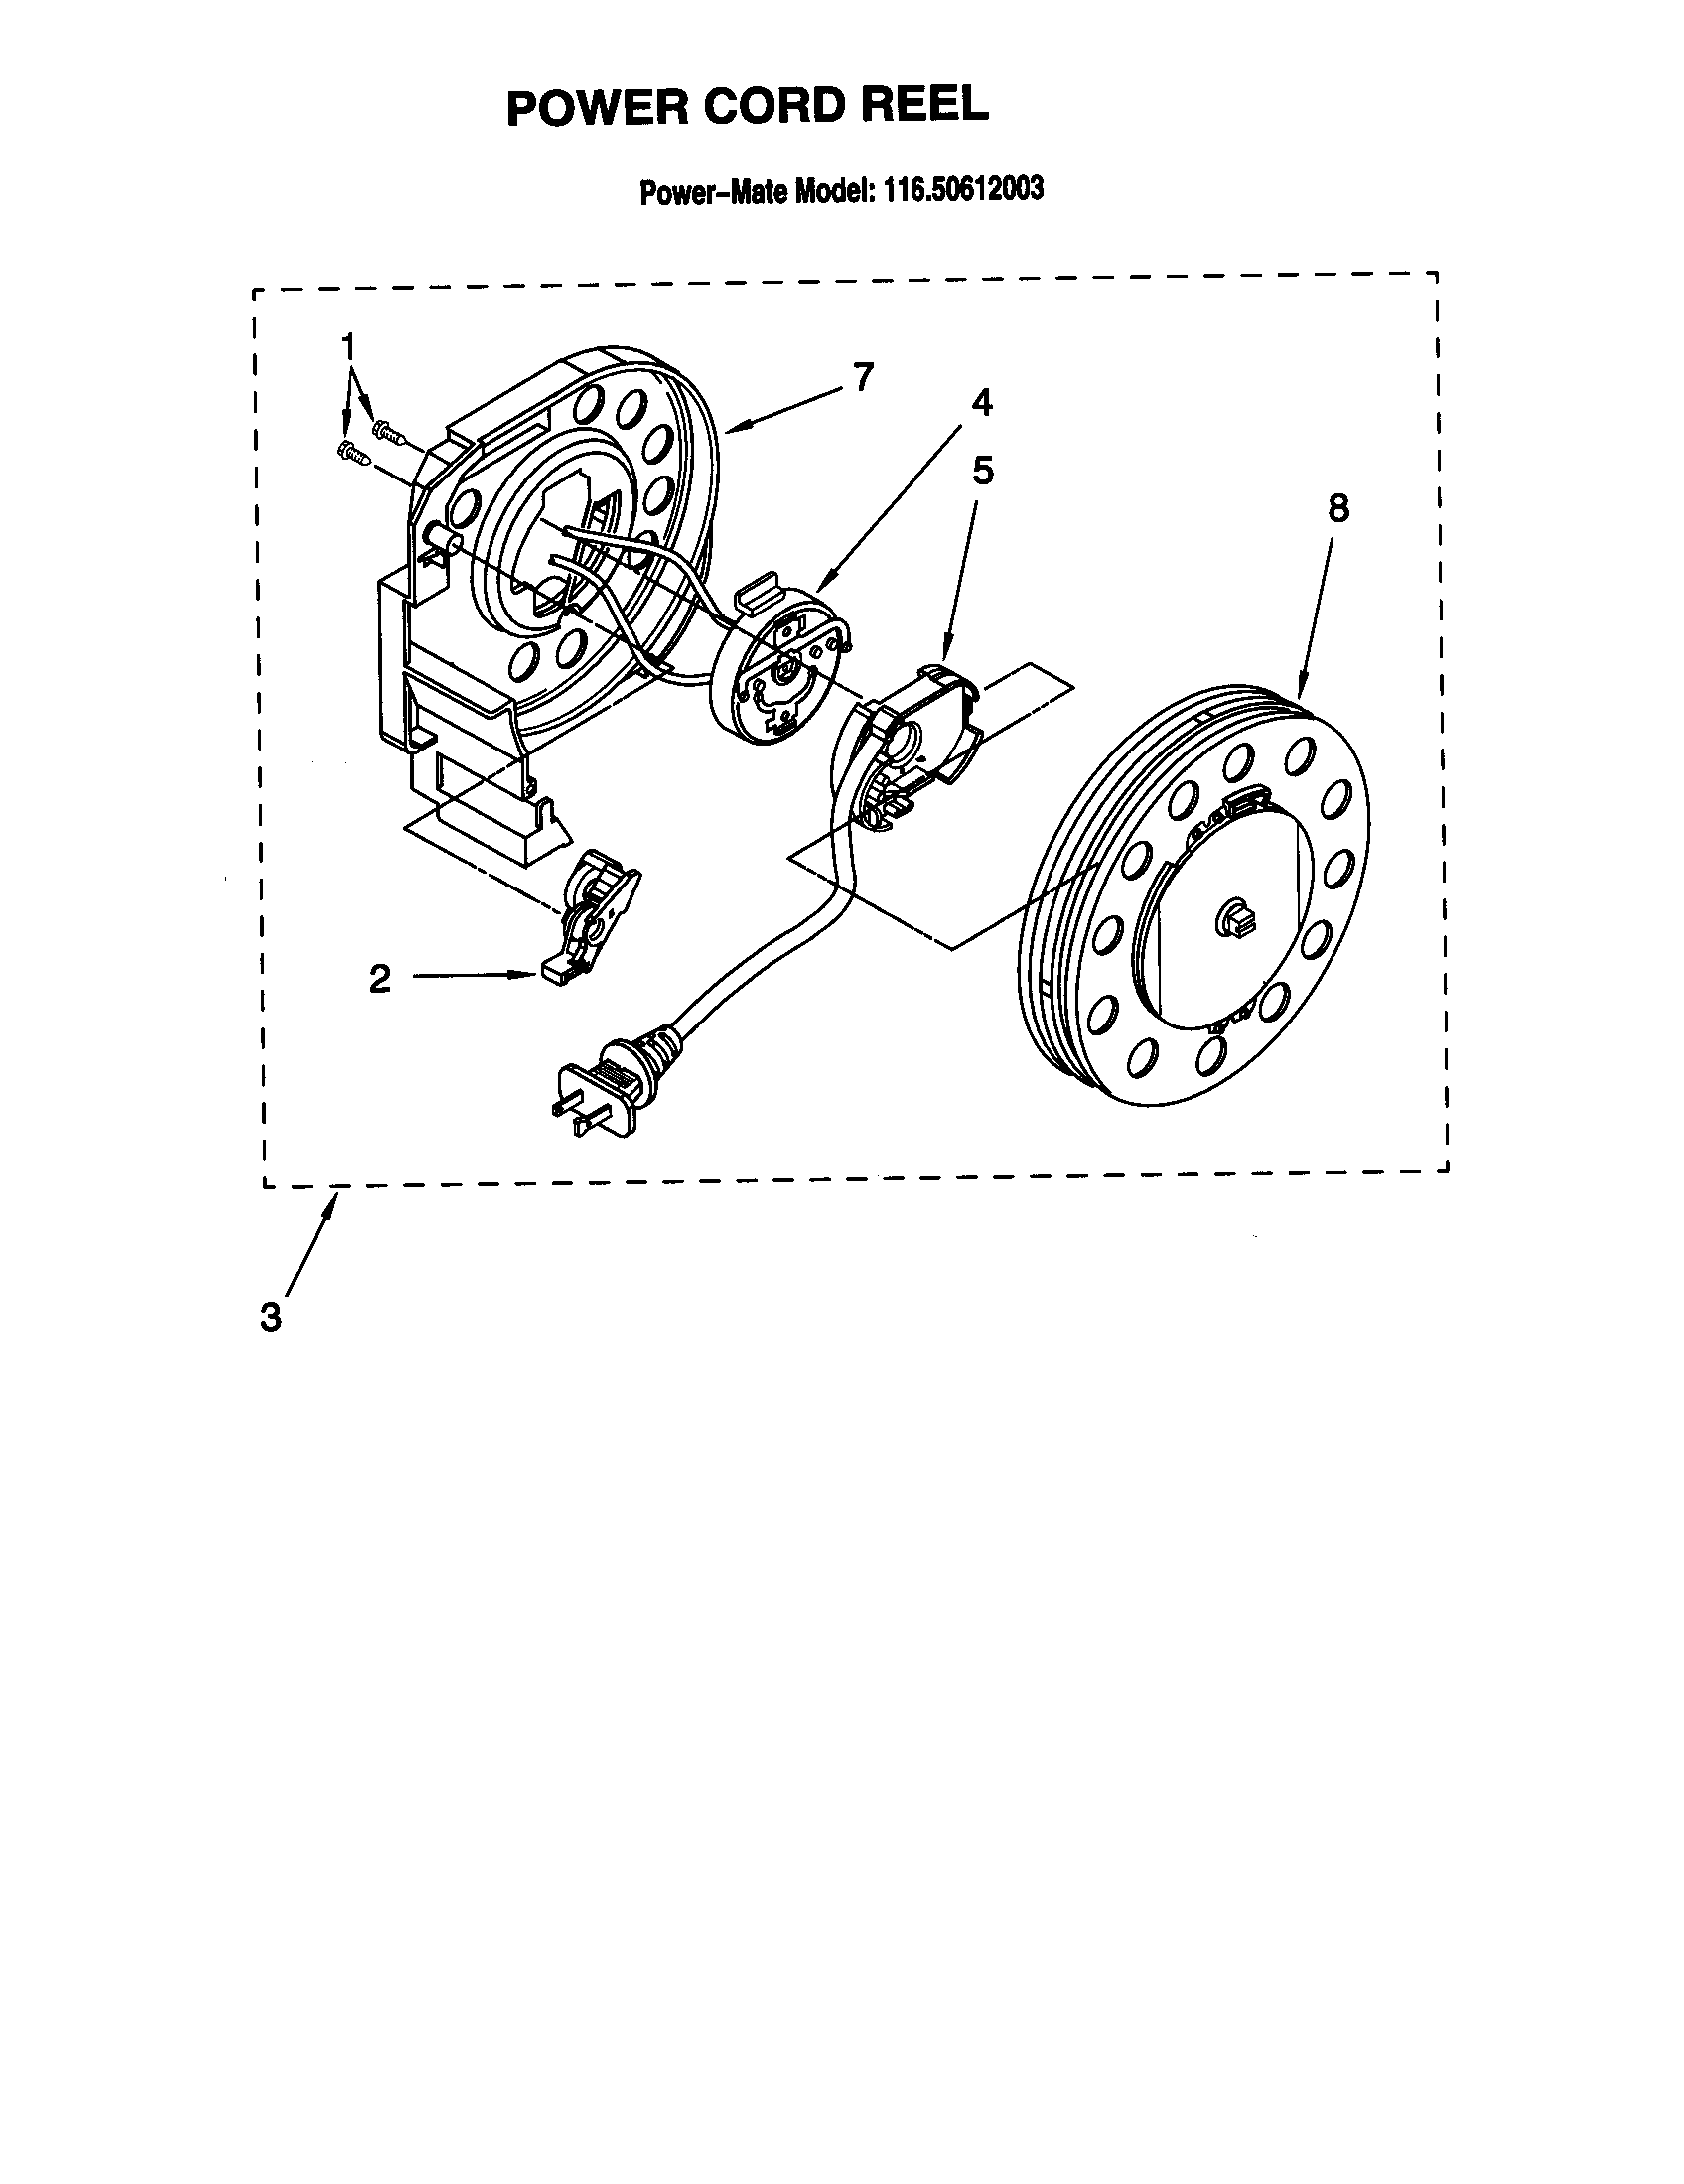 POWER CORD REEL Diagram & Parts List for Model 11620612003